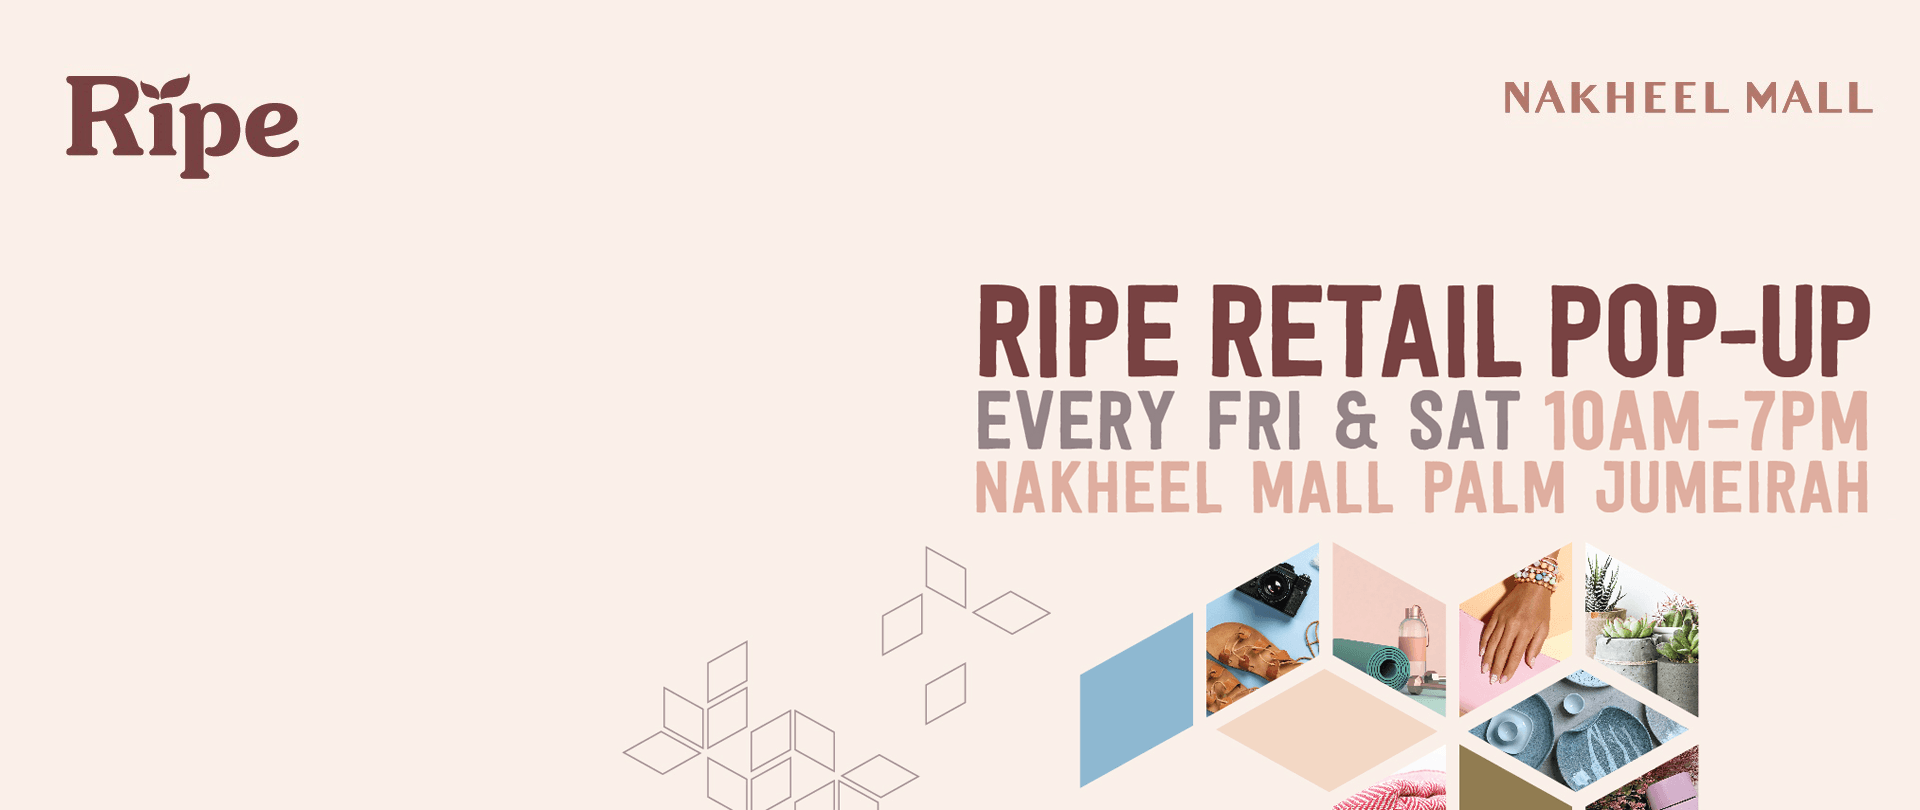 Nakheel Mall brings Ripe Retail Pop-Up to Palm Jumeirah this weekend